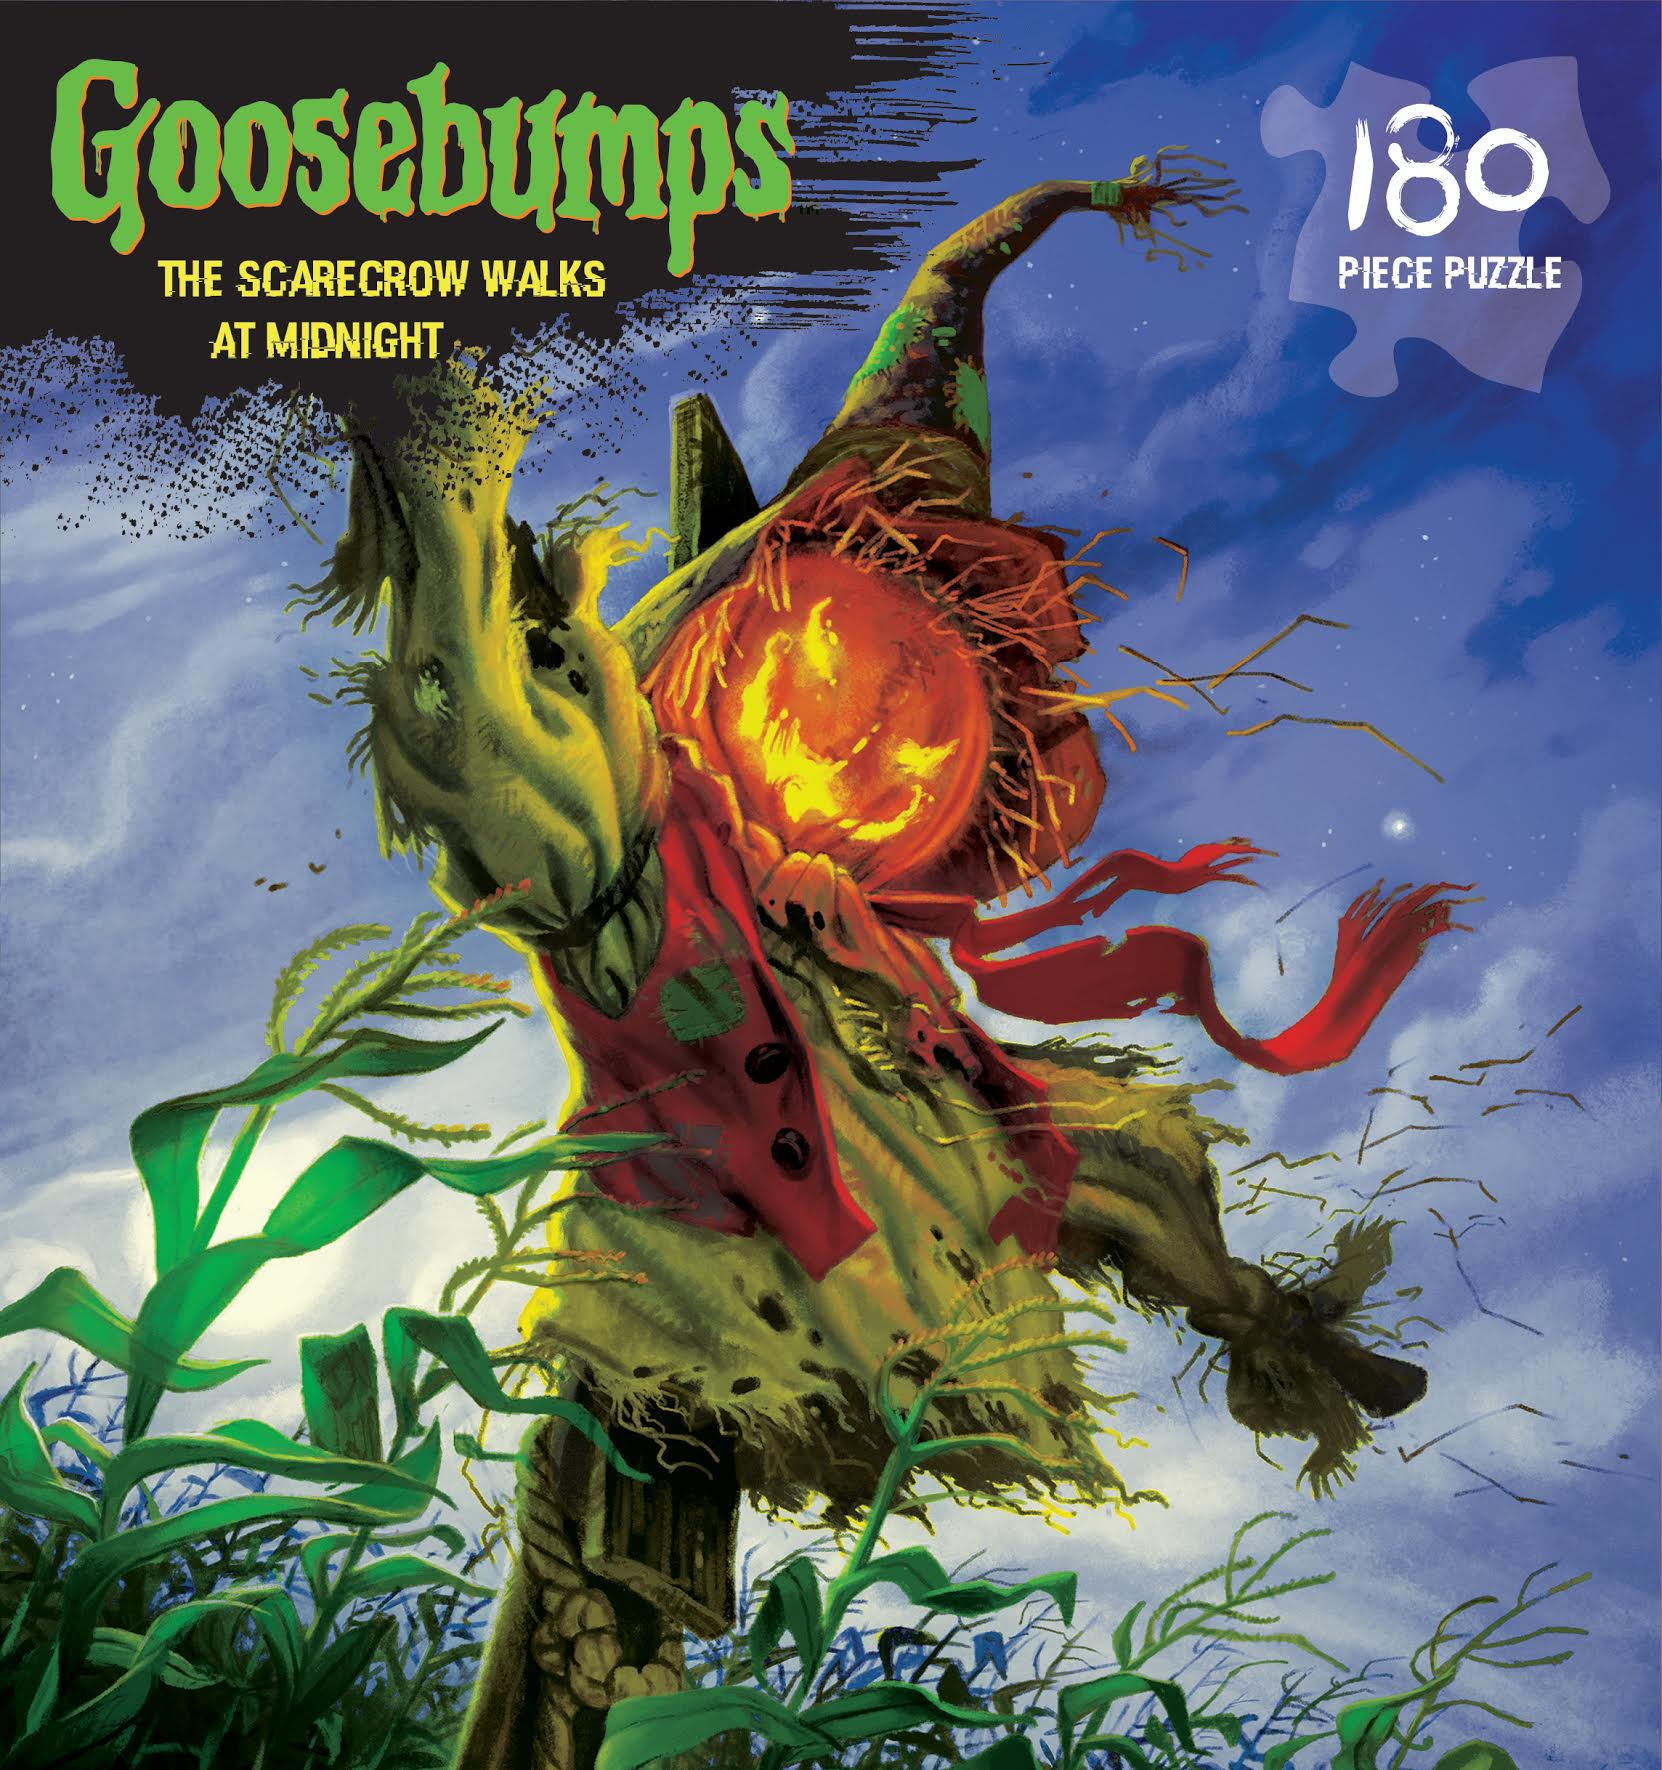 The Scarecrow Walks at Midnight (Goosebumps Puzzle ) Halloween Jigsaw Puzzle